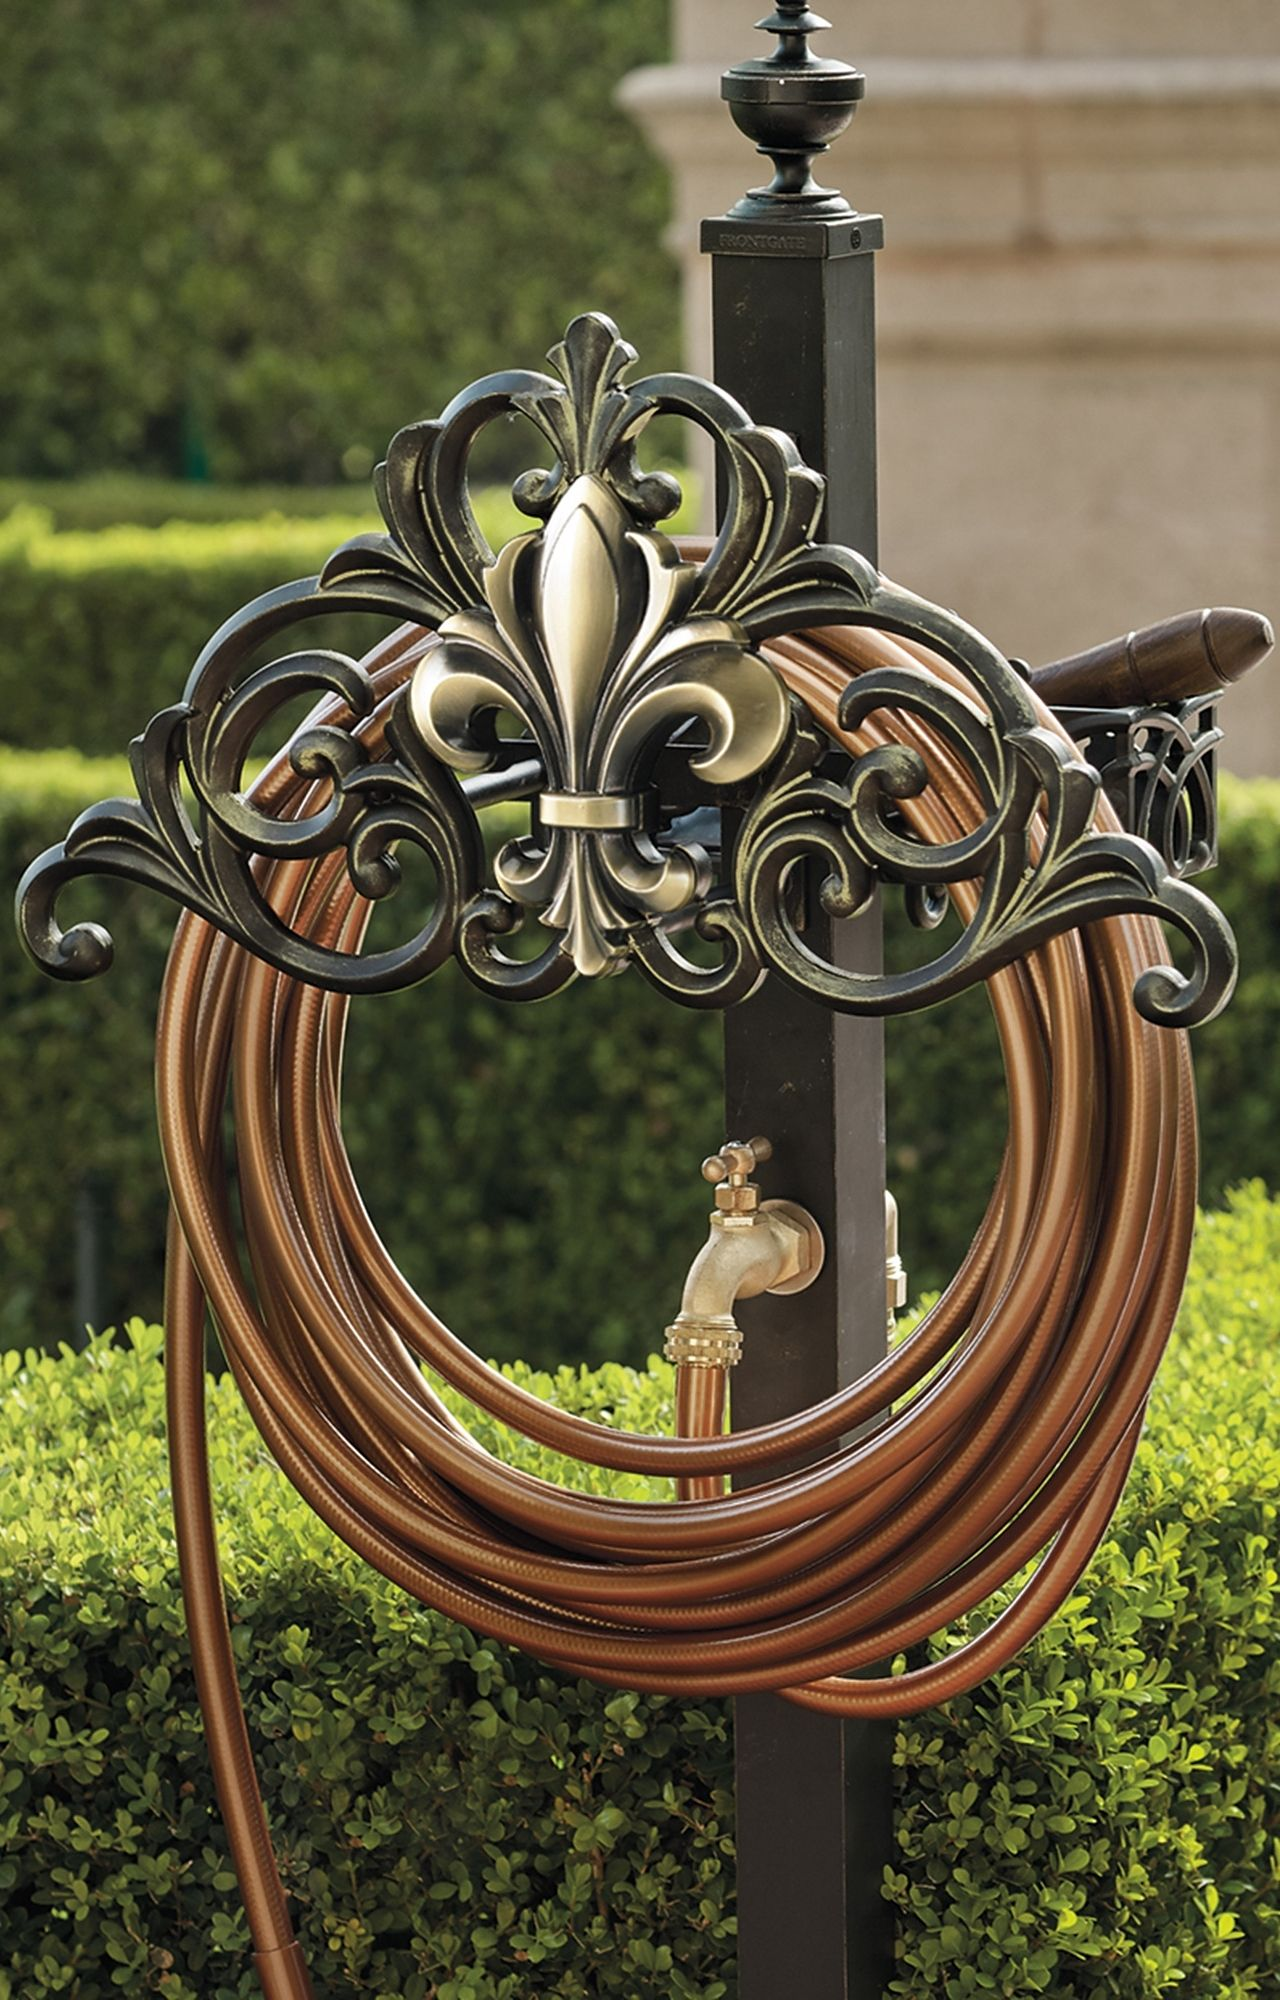 Add A Functional And Decorative Touch To Your Garden With Our Elegant Fleur De Lis Hose Storage